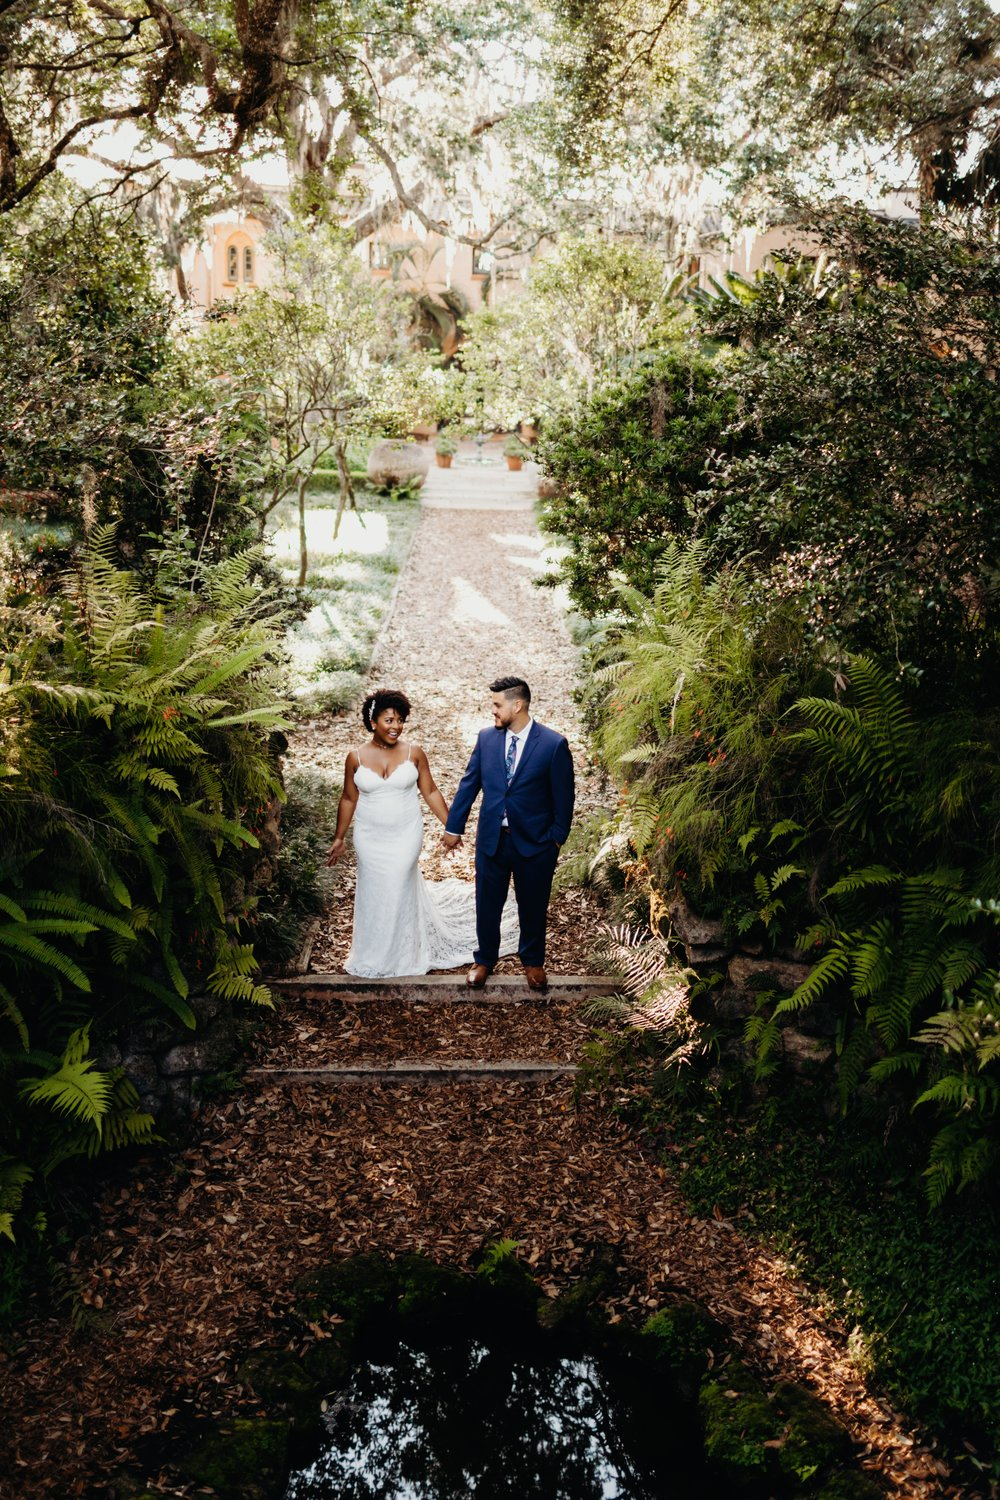 Jose and Valerie | Wedding | Bok Tower Gardens | Photography by Vanessa Boy (757 of 204)final.jpg